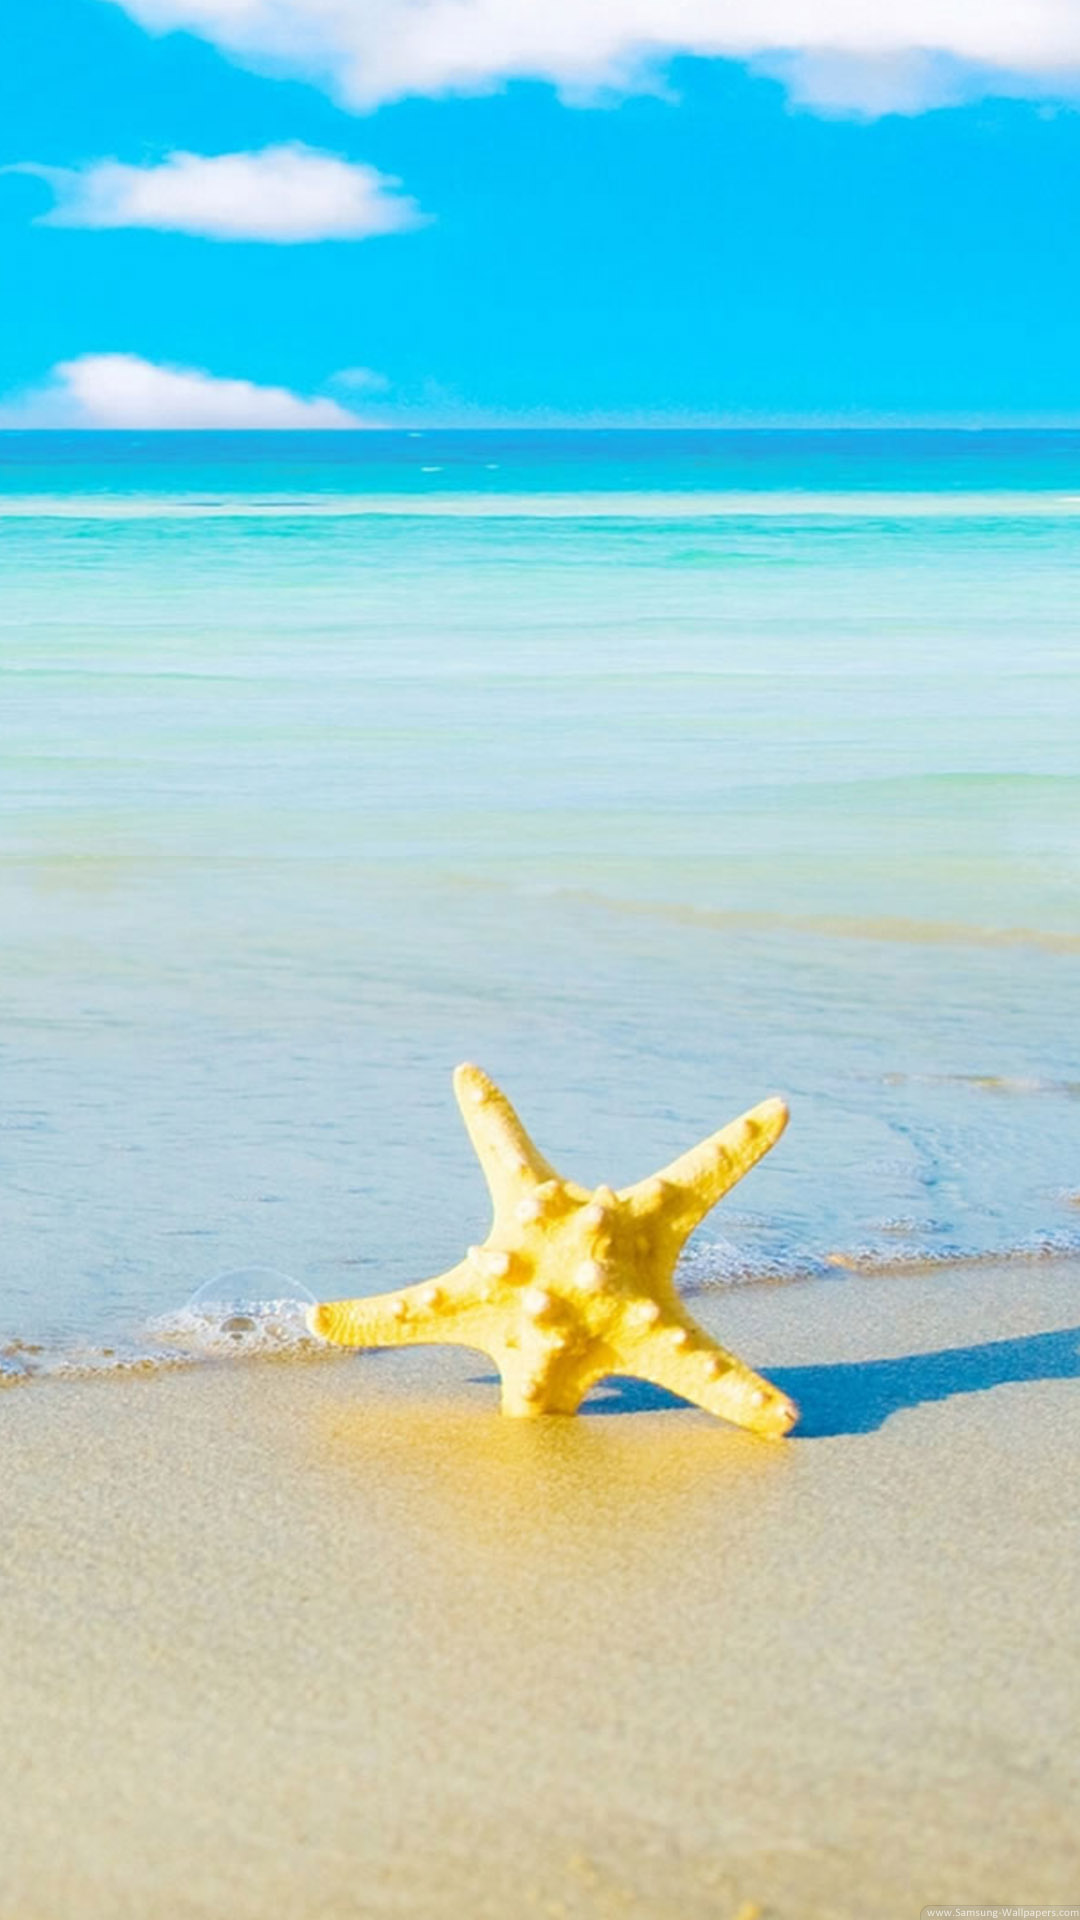 4K Starfish Wallpapers High Quality | Download Free